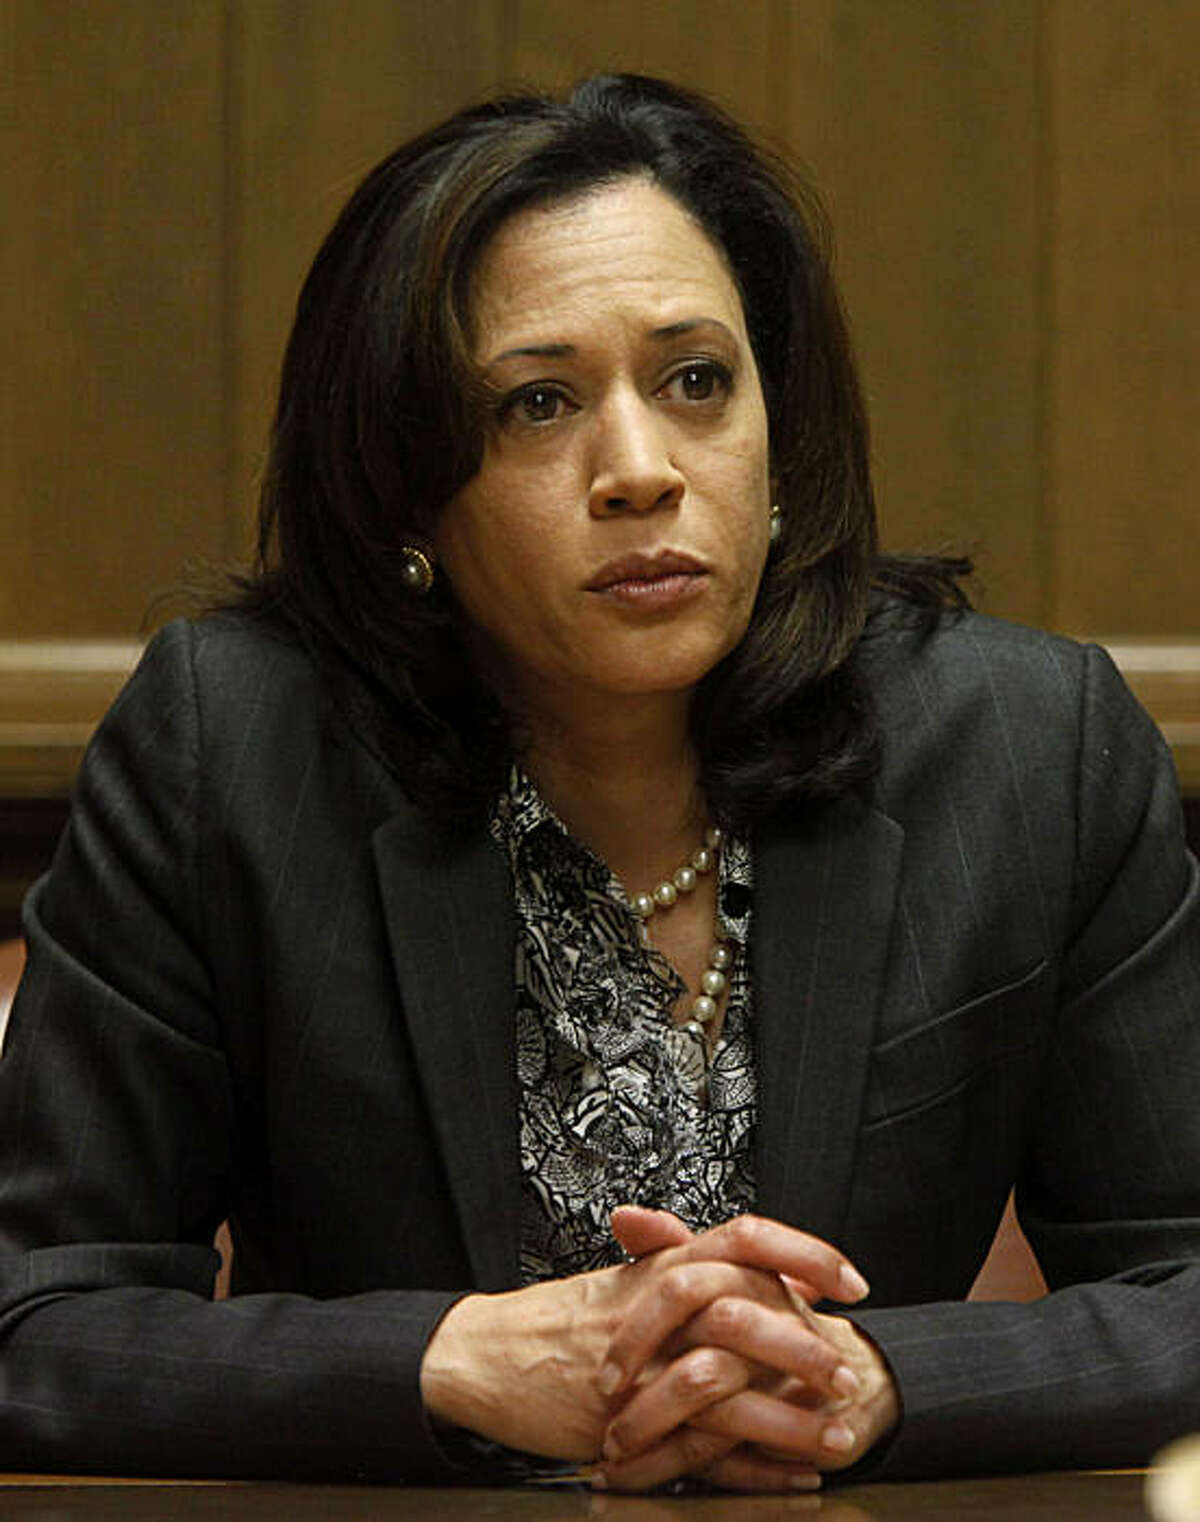 San Francisco District Attorney Kamala Harris, who is running for state Attorney General, speaks with the San Francisco Chronicle editorial board at the Chronicle on Thursday April 22, 2010 in San Francisco, Calif.